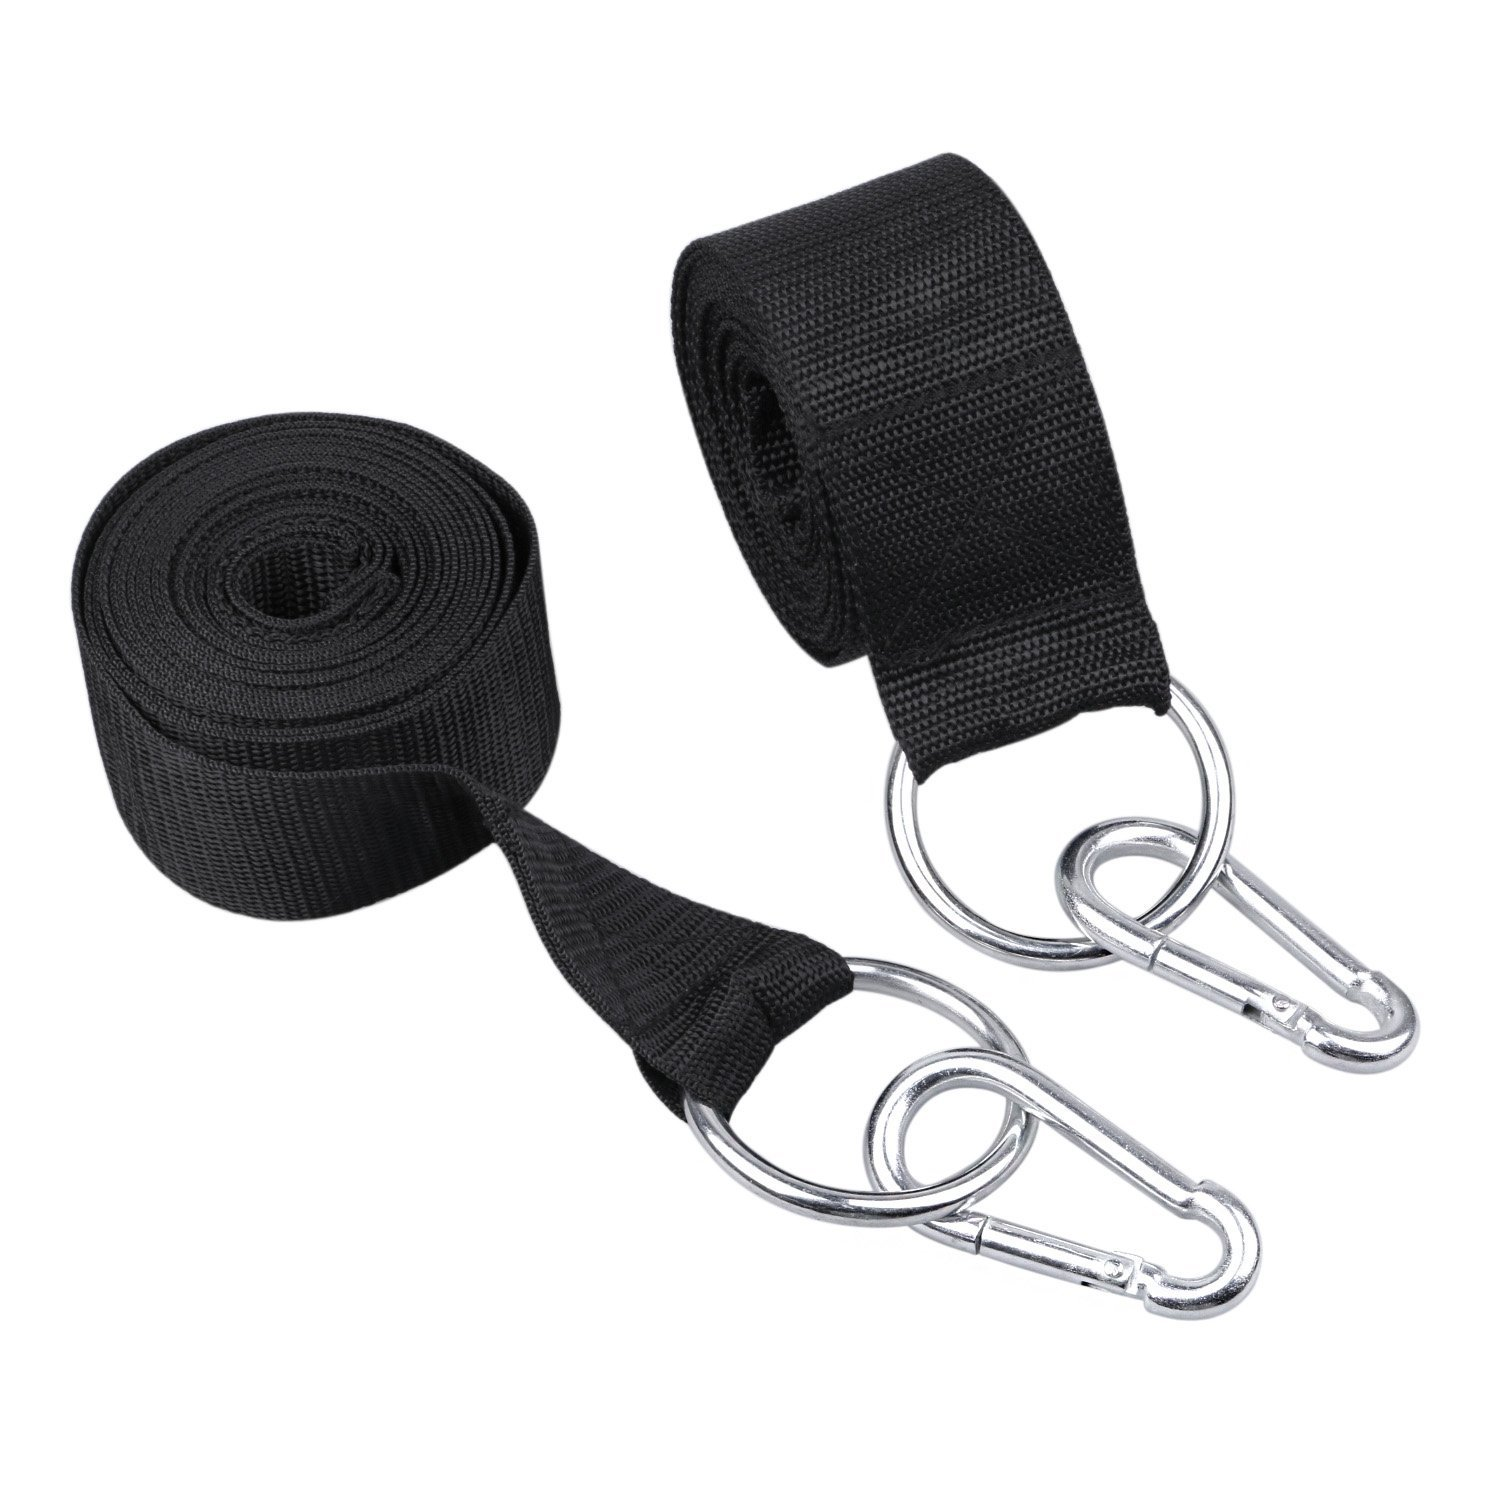 Hammock Tree Straps, Golo Black XL Adjustable Non-Stretch Extra Strong Suspension Camping Hammocks Hanging Strap Set with Heavy Duty Hooks Carrying Pouch for Camping, Hiking and Backyard Fun(2 Pack)